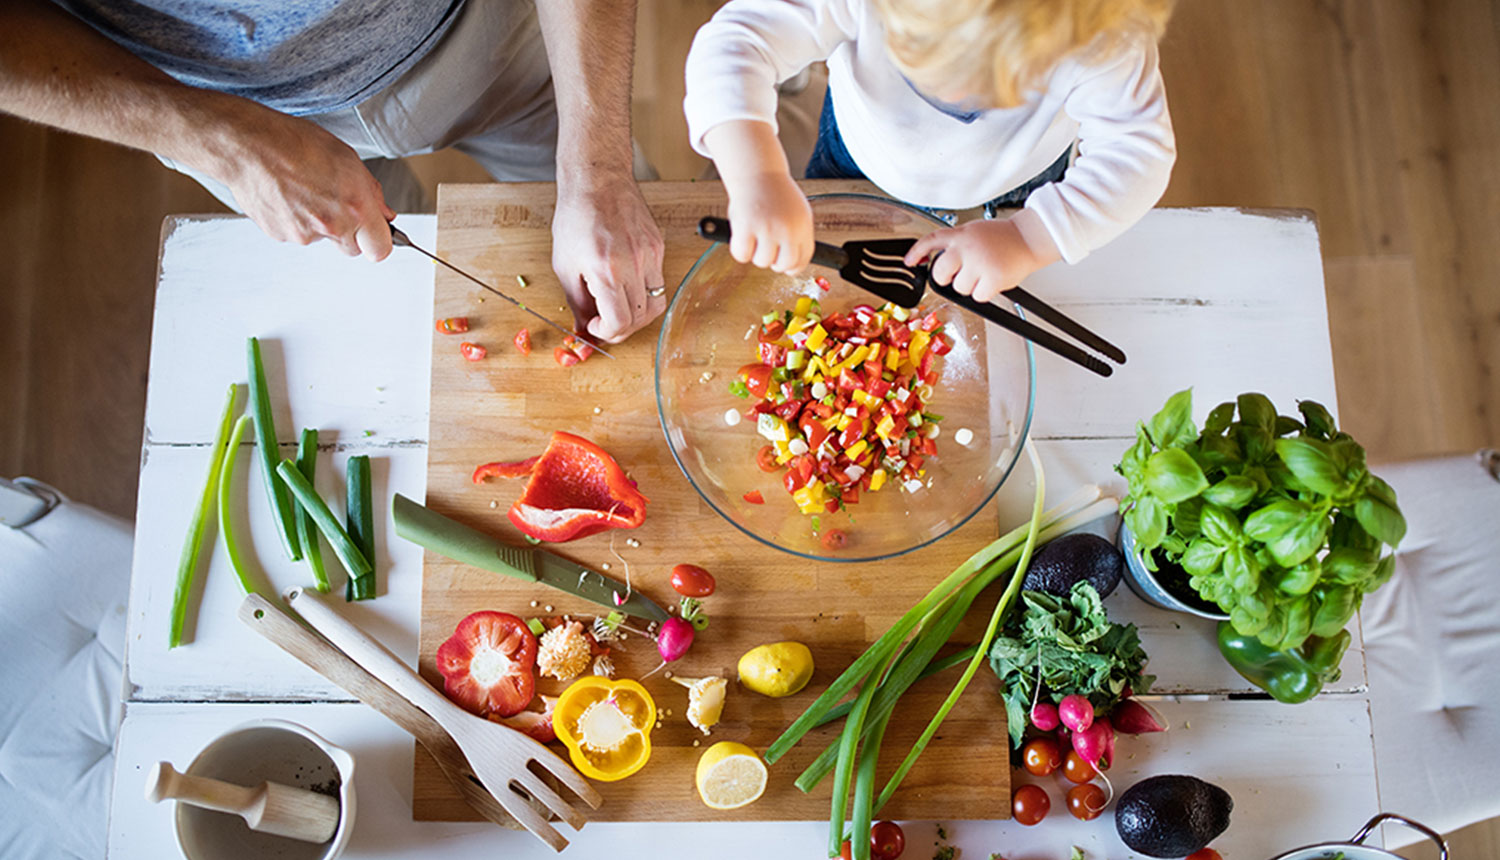 healthy foods in kitchen with toddler